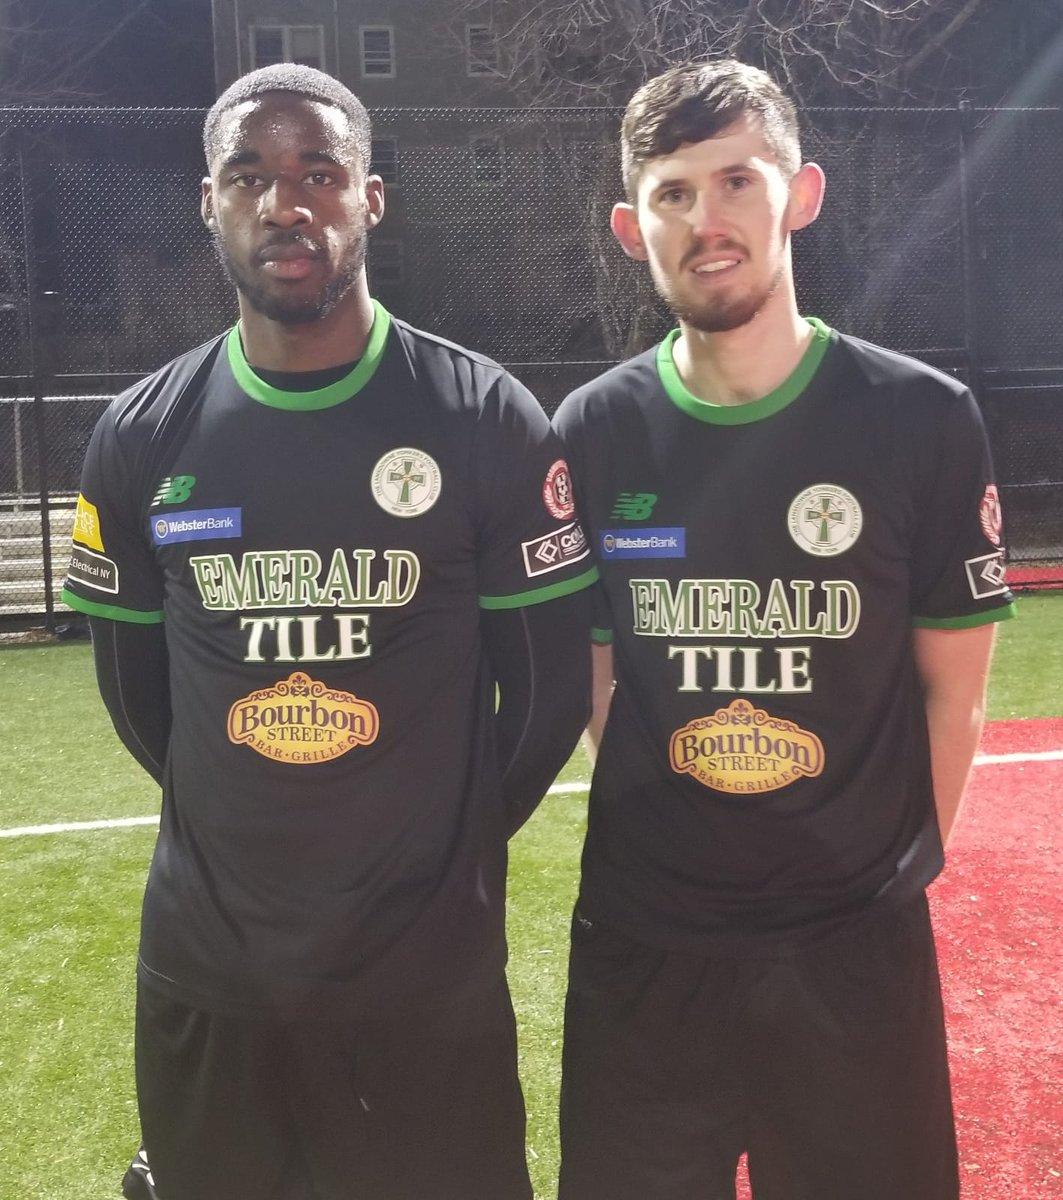 Bhoys win 3-2, deserved victory v a tough opponent, Bhoys were sporting their new away tops tonight